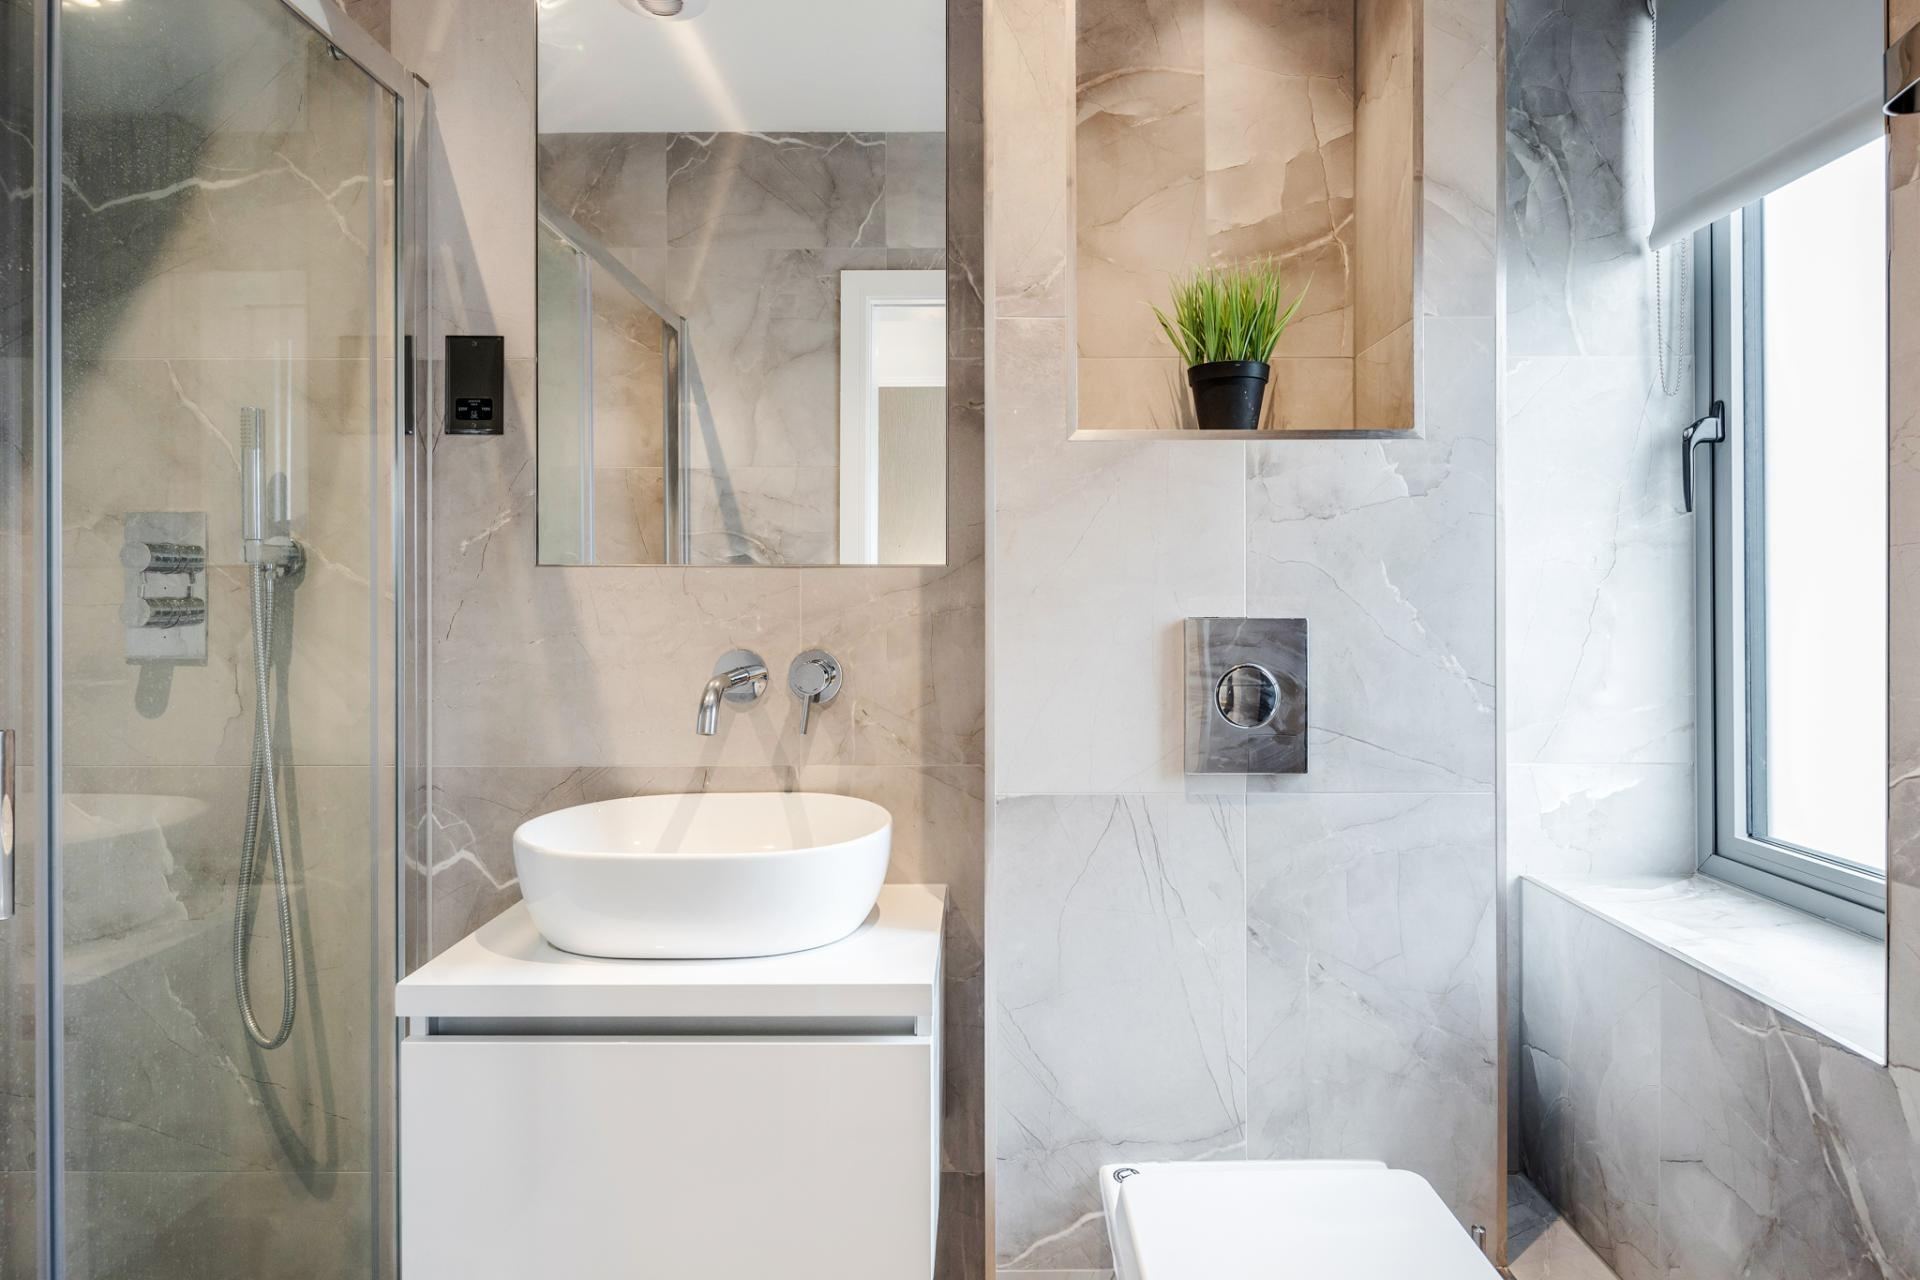 Bathroom at Dudley House Apartments, Brentford, London - Citybase Apartments